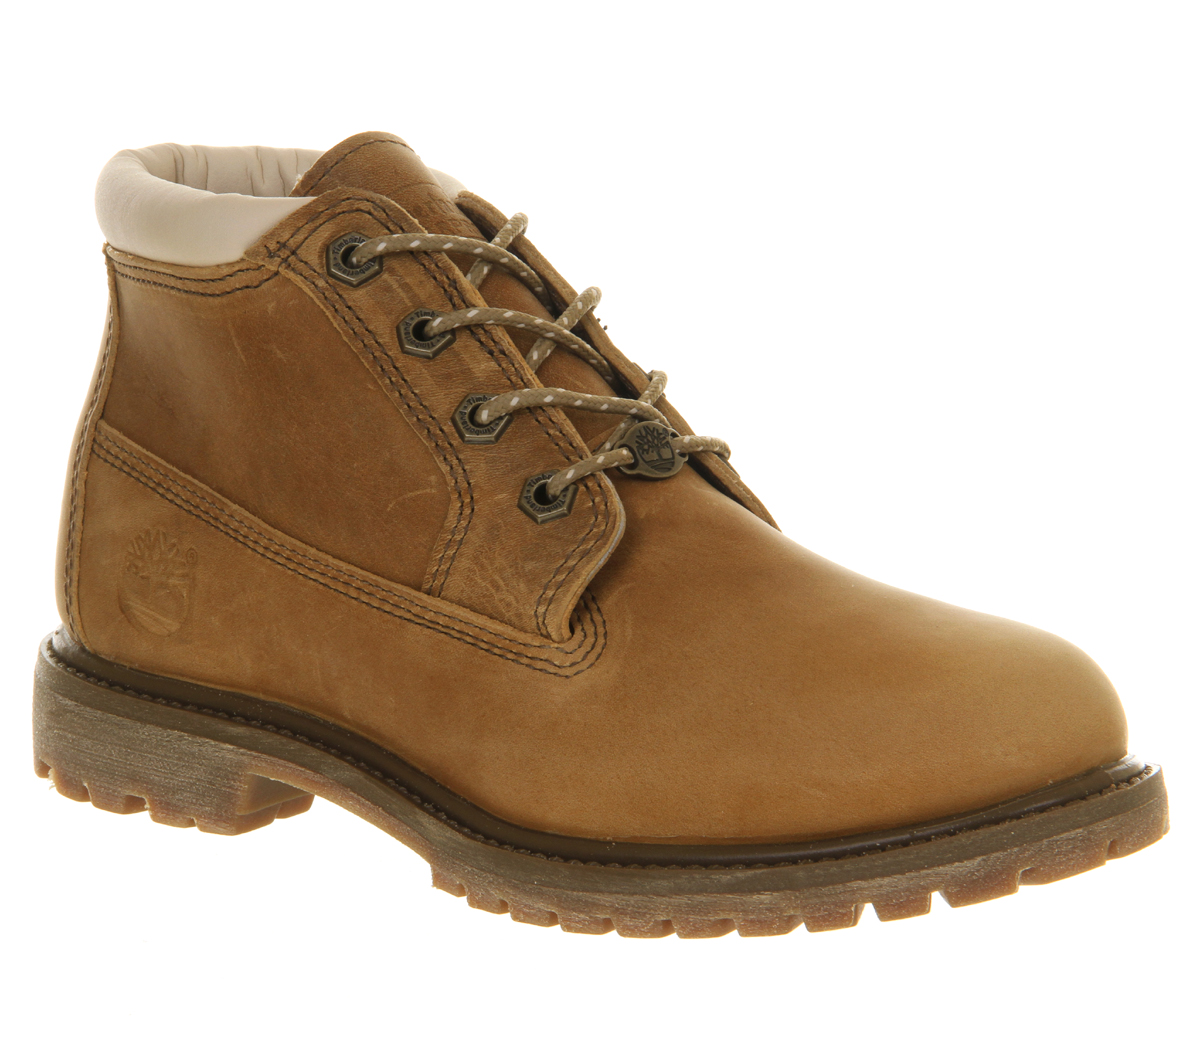 Excellent These Shoes Also Come In A Wide Fitting And A Sleek Rust Colournubuck Upperwaterproofcomfortable Padded Collaranti Fatigue Footbedsynthetic Sole Browse Our Ebay Store View All Boots View All Womens View All Timberland View All